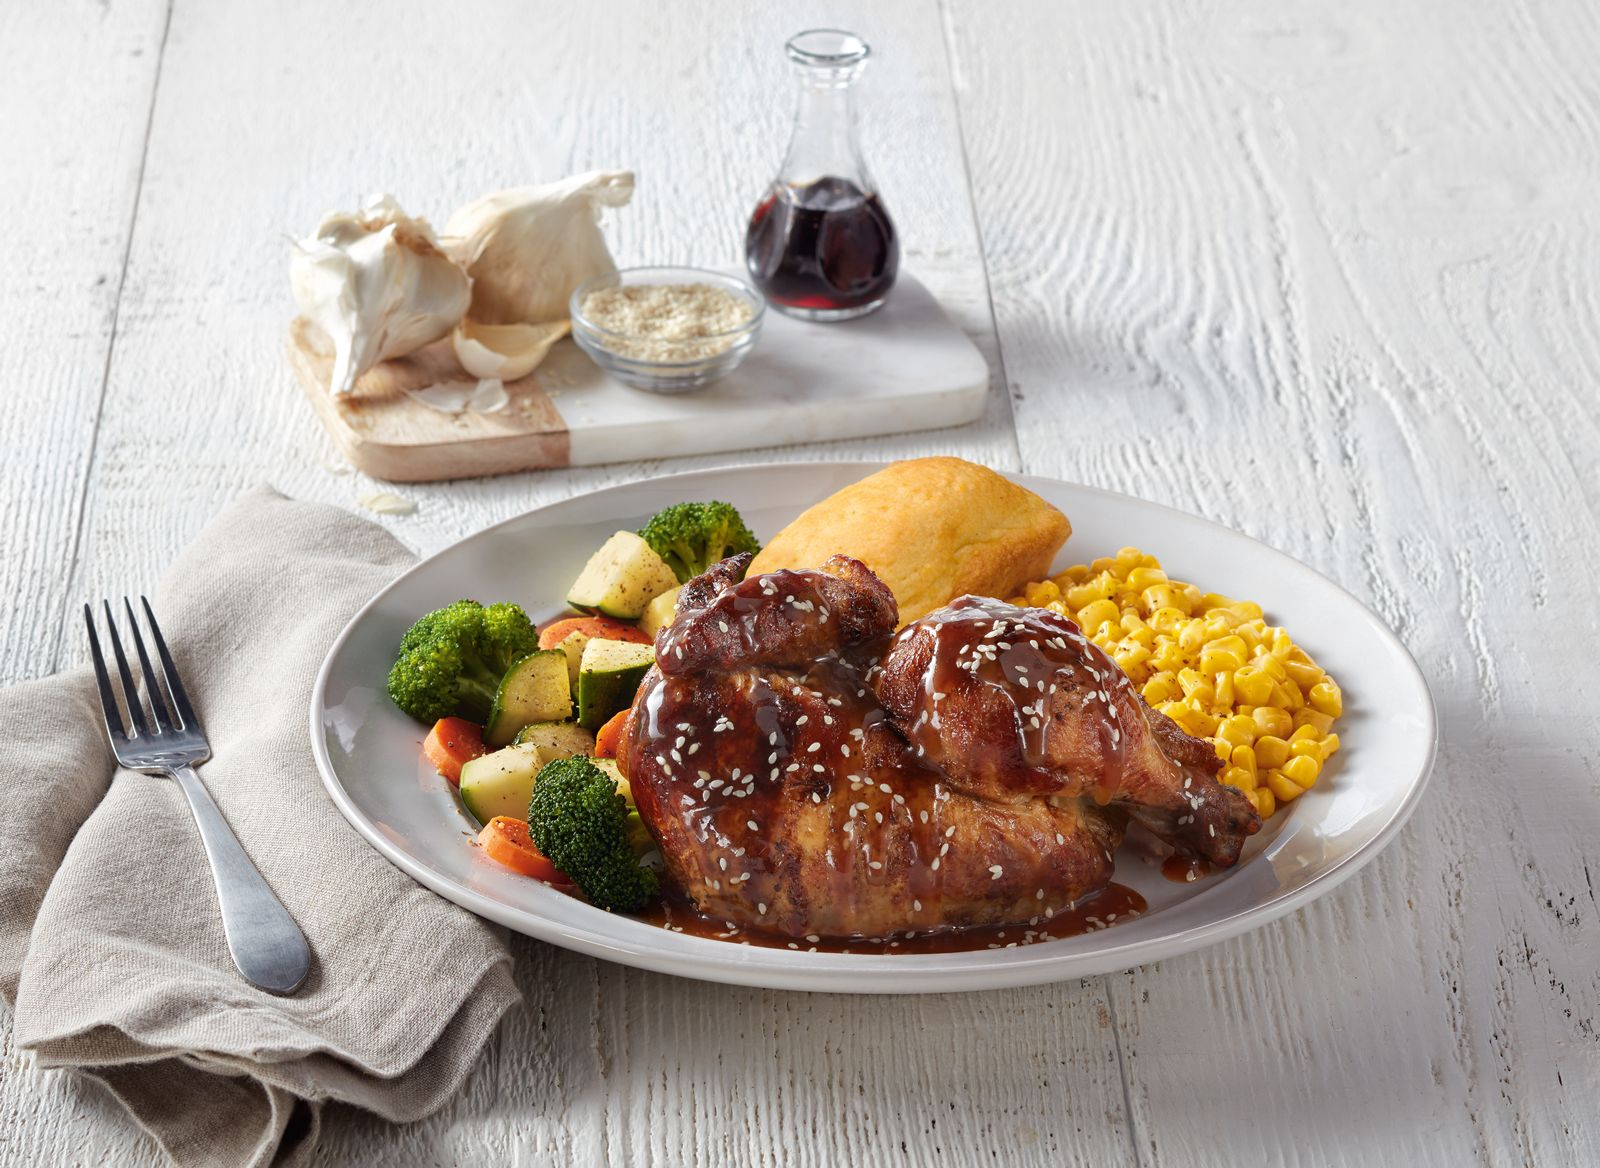 Boston Market Sesame Rotisserie Chicken